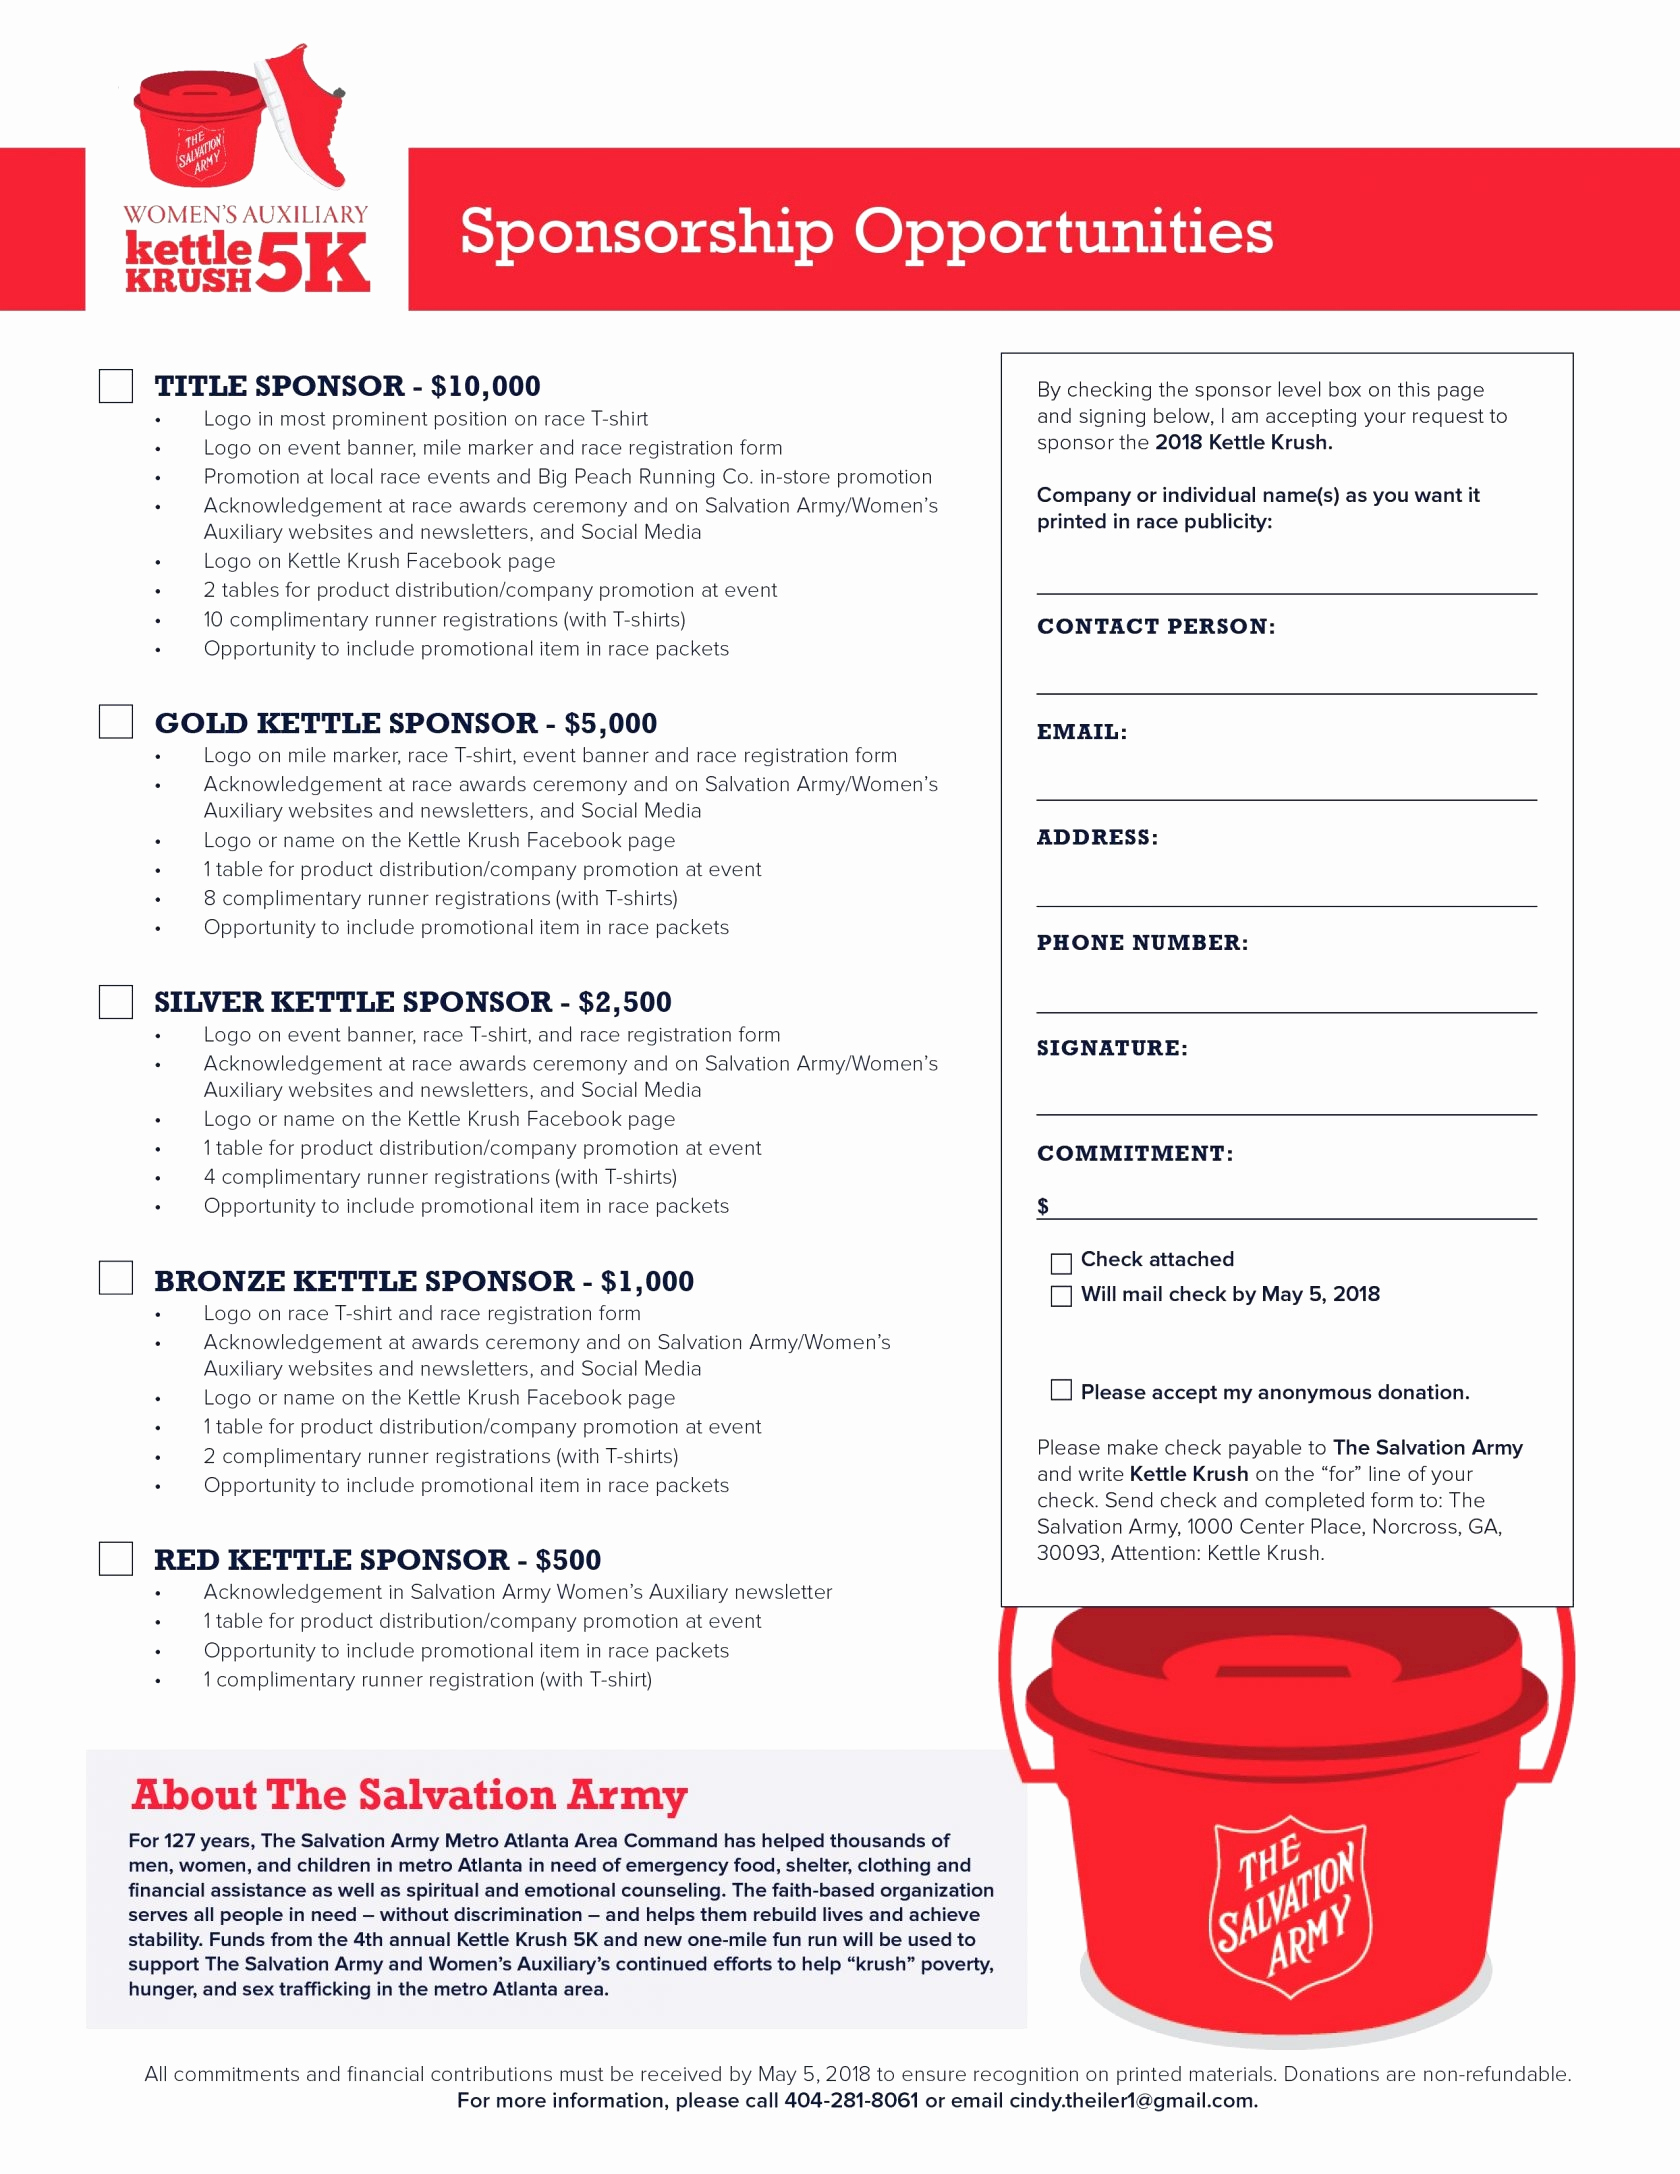 Salvation Army Donation Guide Spreadsheet Regarding Salvation Army Valuation Guide Spreadsheet  Active Coupons